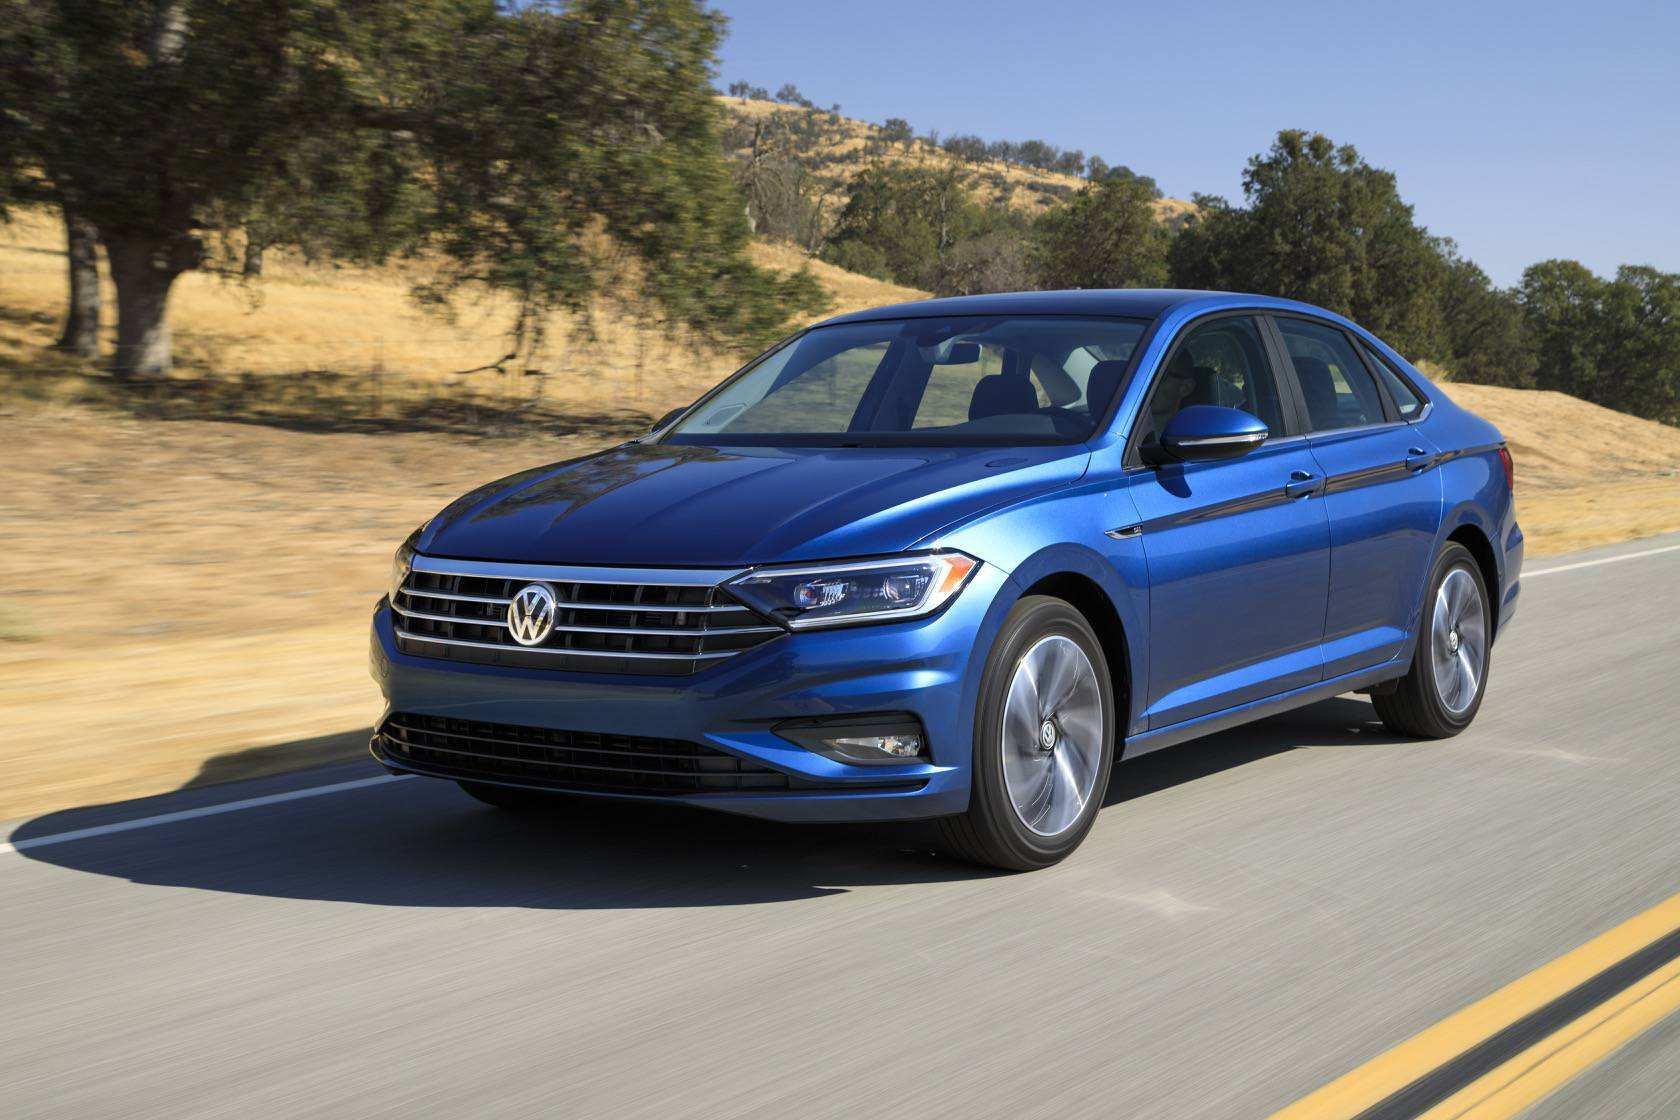 75 Great New Volkswagen Jetta 2020 Release Date by New Volkswagen Jetta 2020